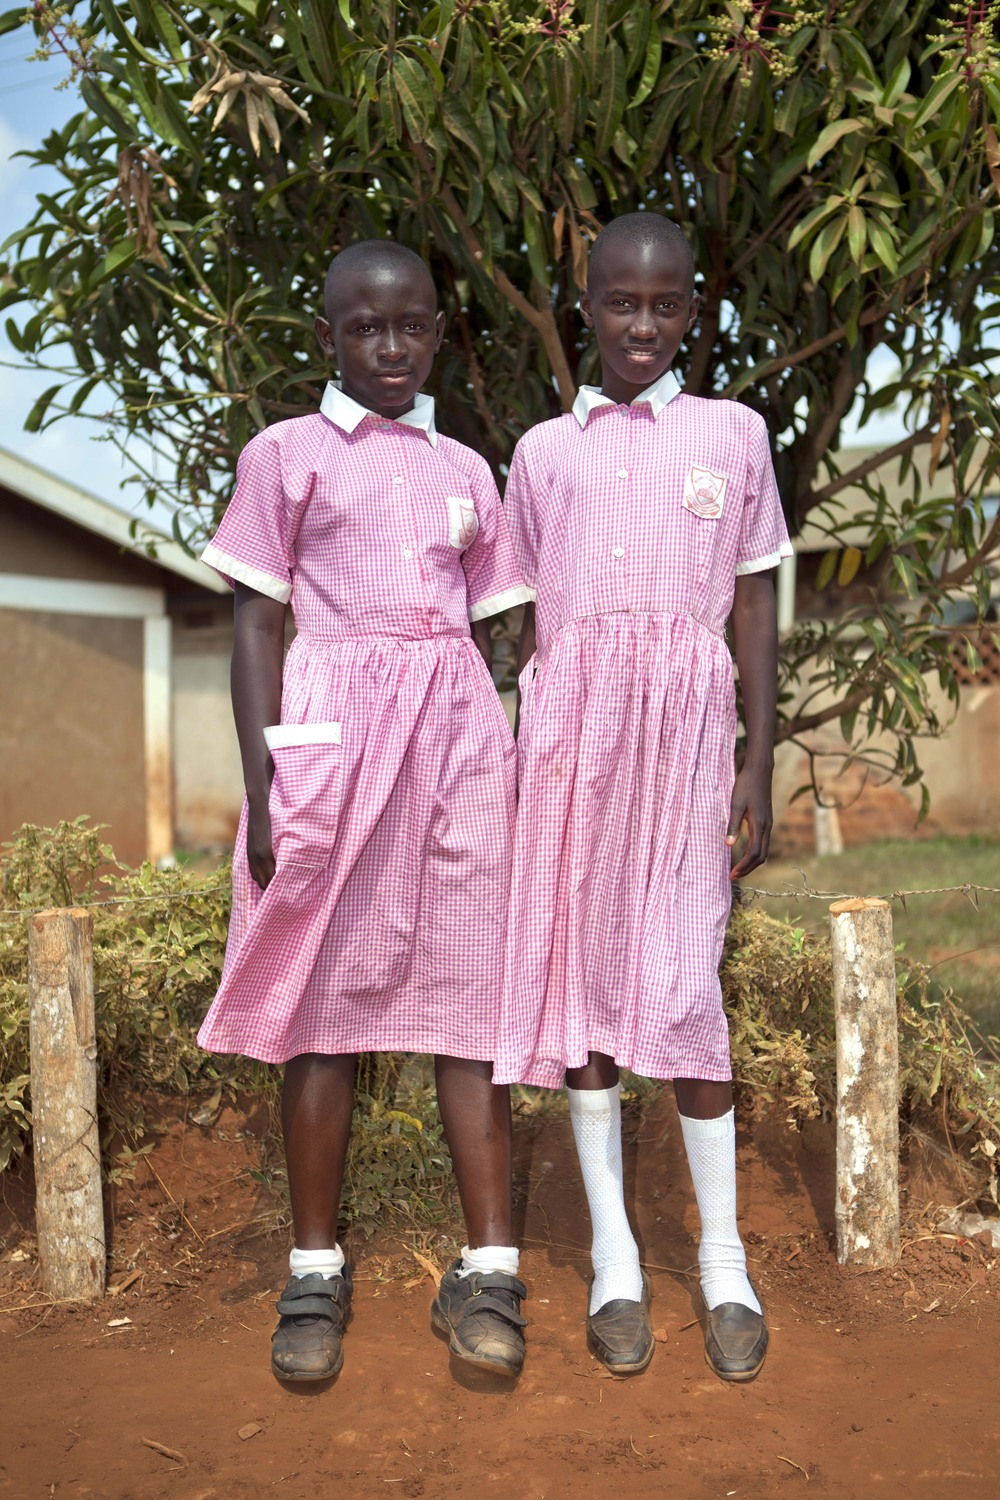 Twins in pink dresses CC sm.jpg